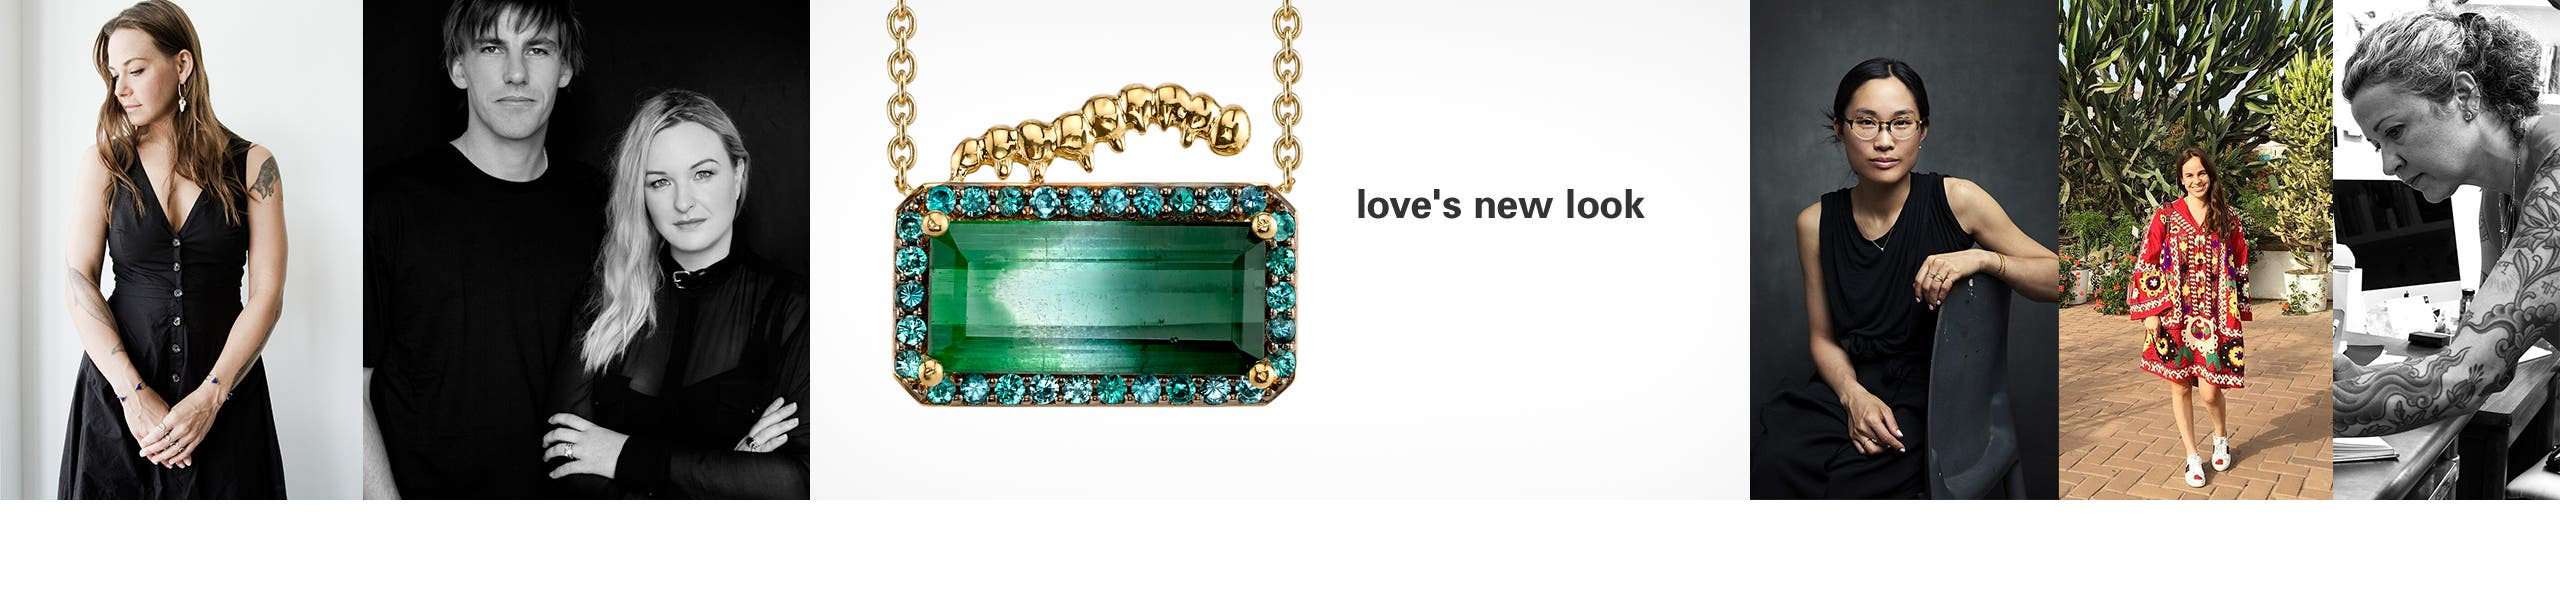 Love's new look. Our exclusive Valentine's Day jewelry collections from Daniela Villegas and more.